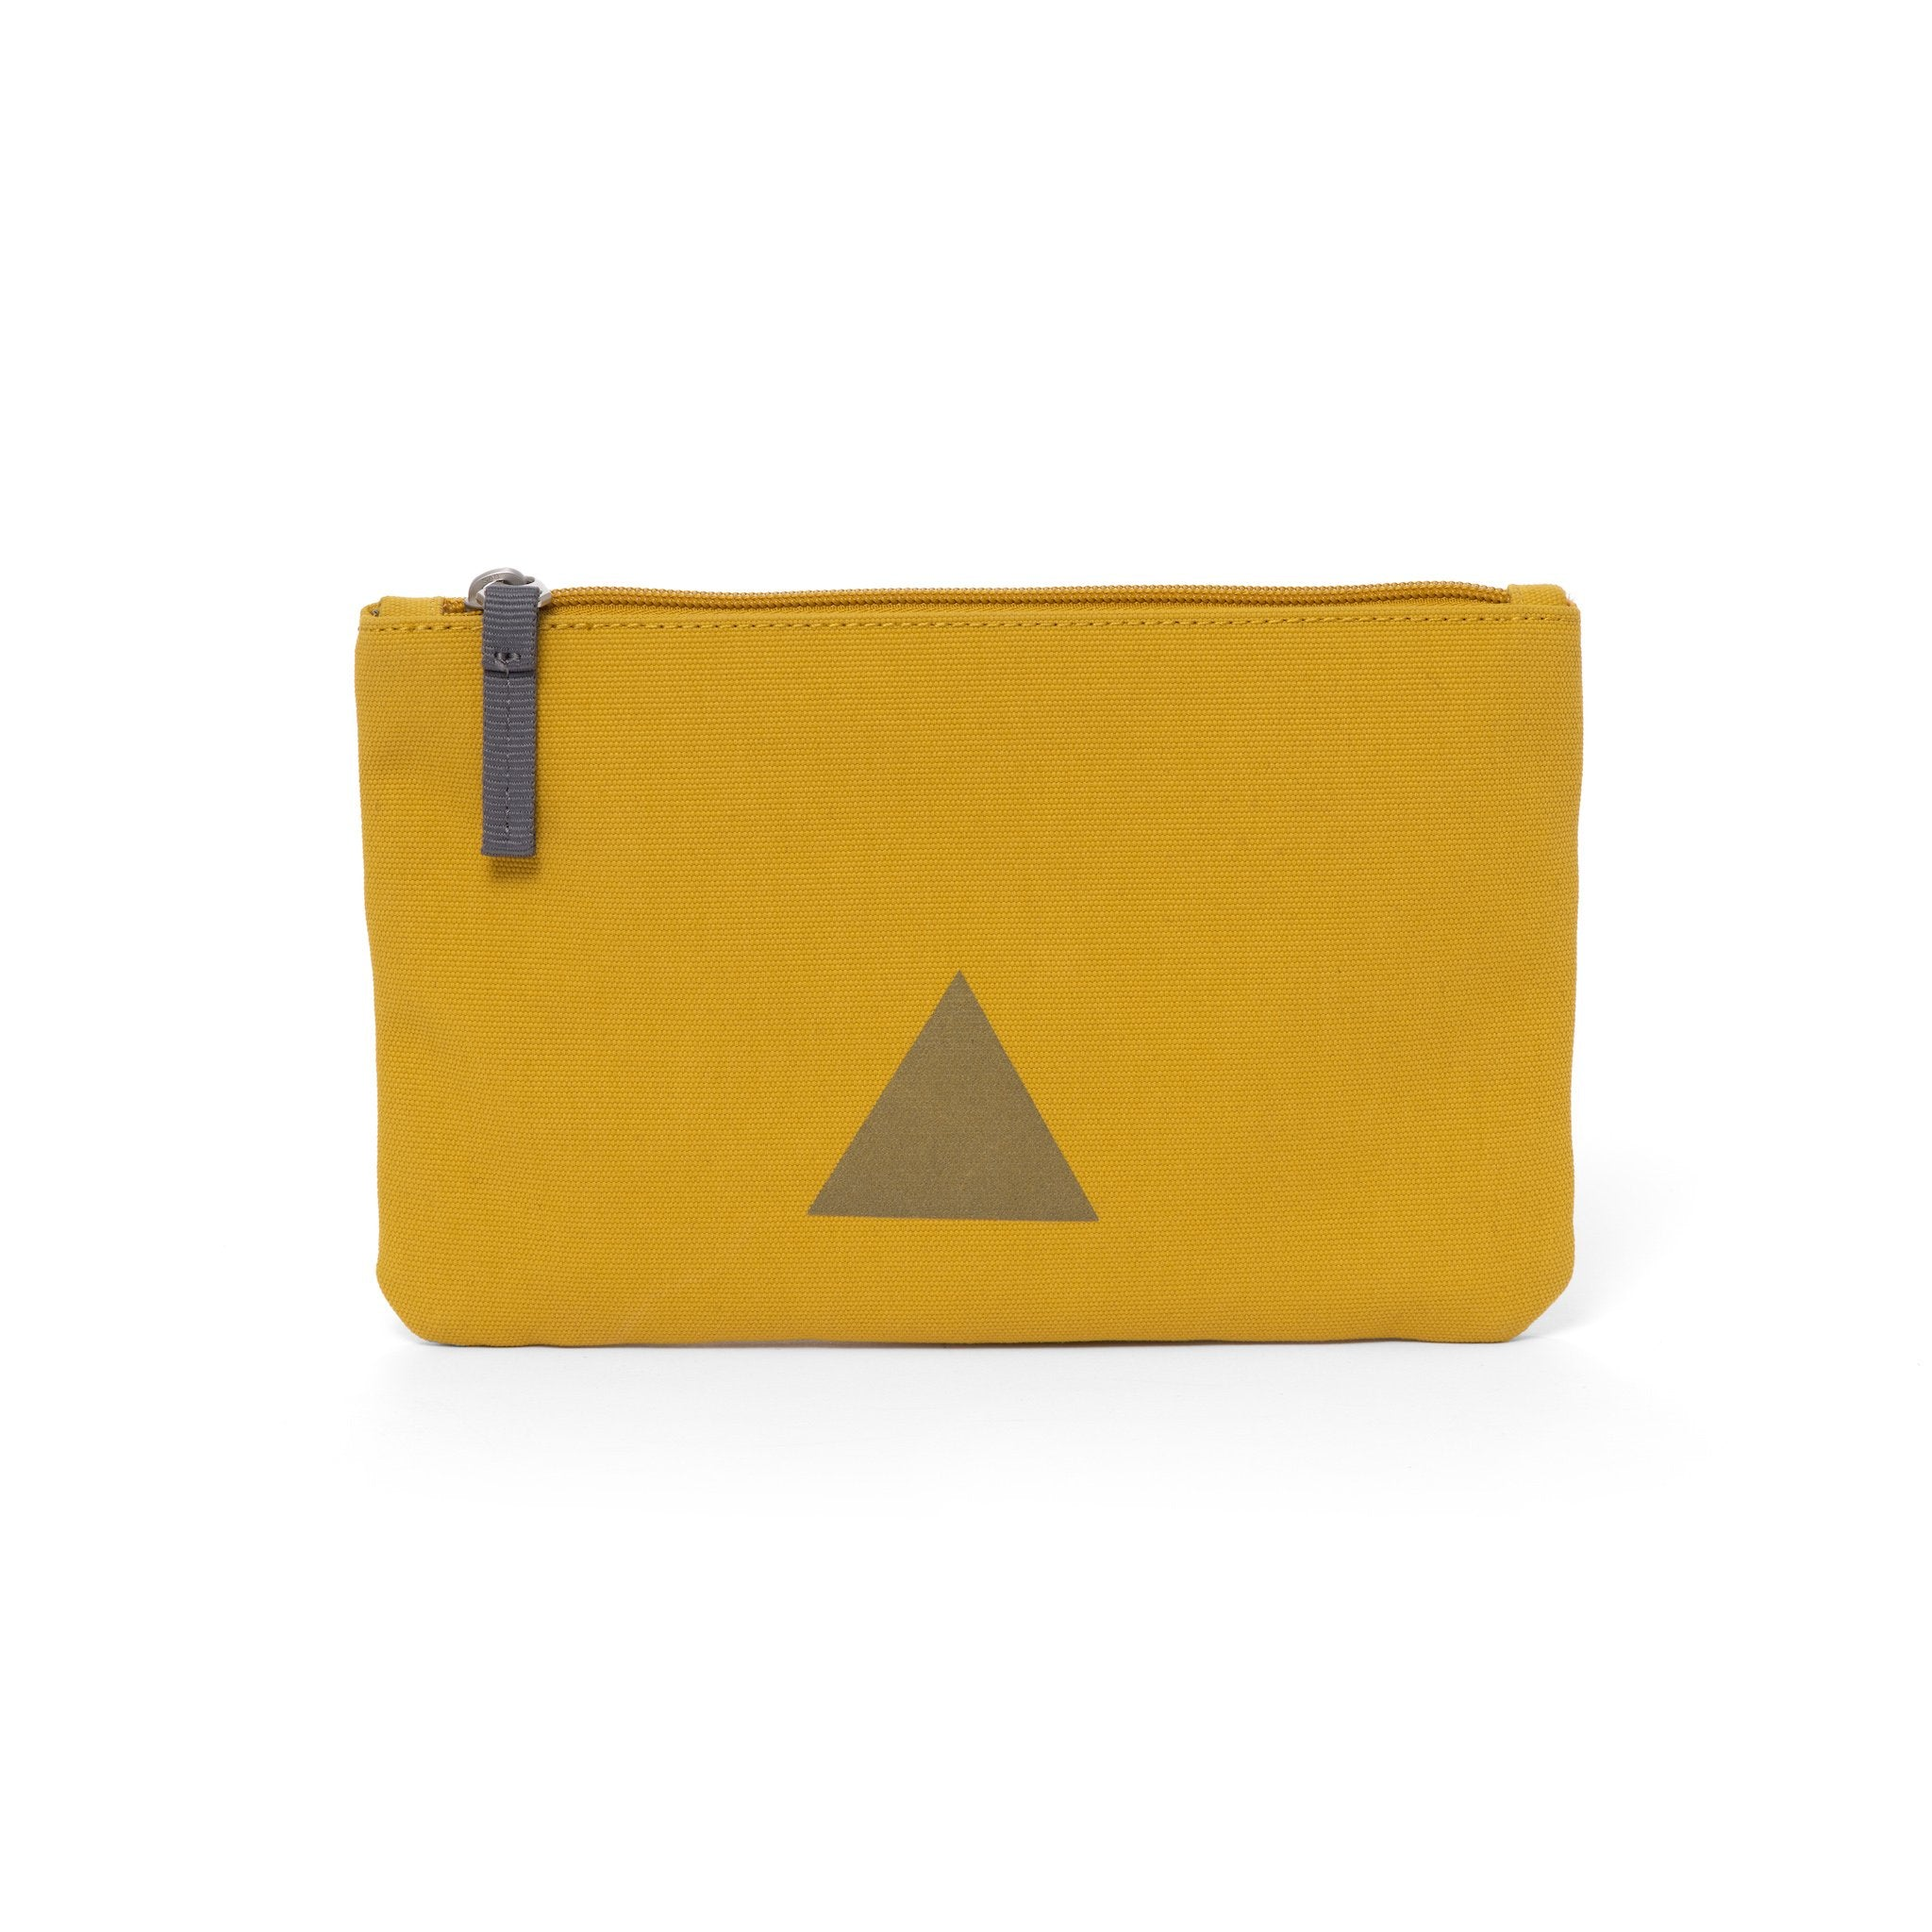 Yellow canvas travel wallet with zip opening and triangle logo.